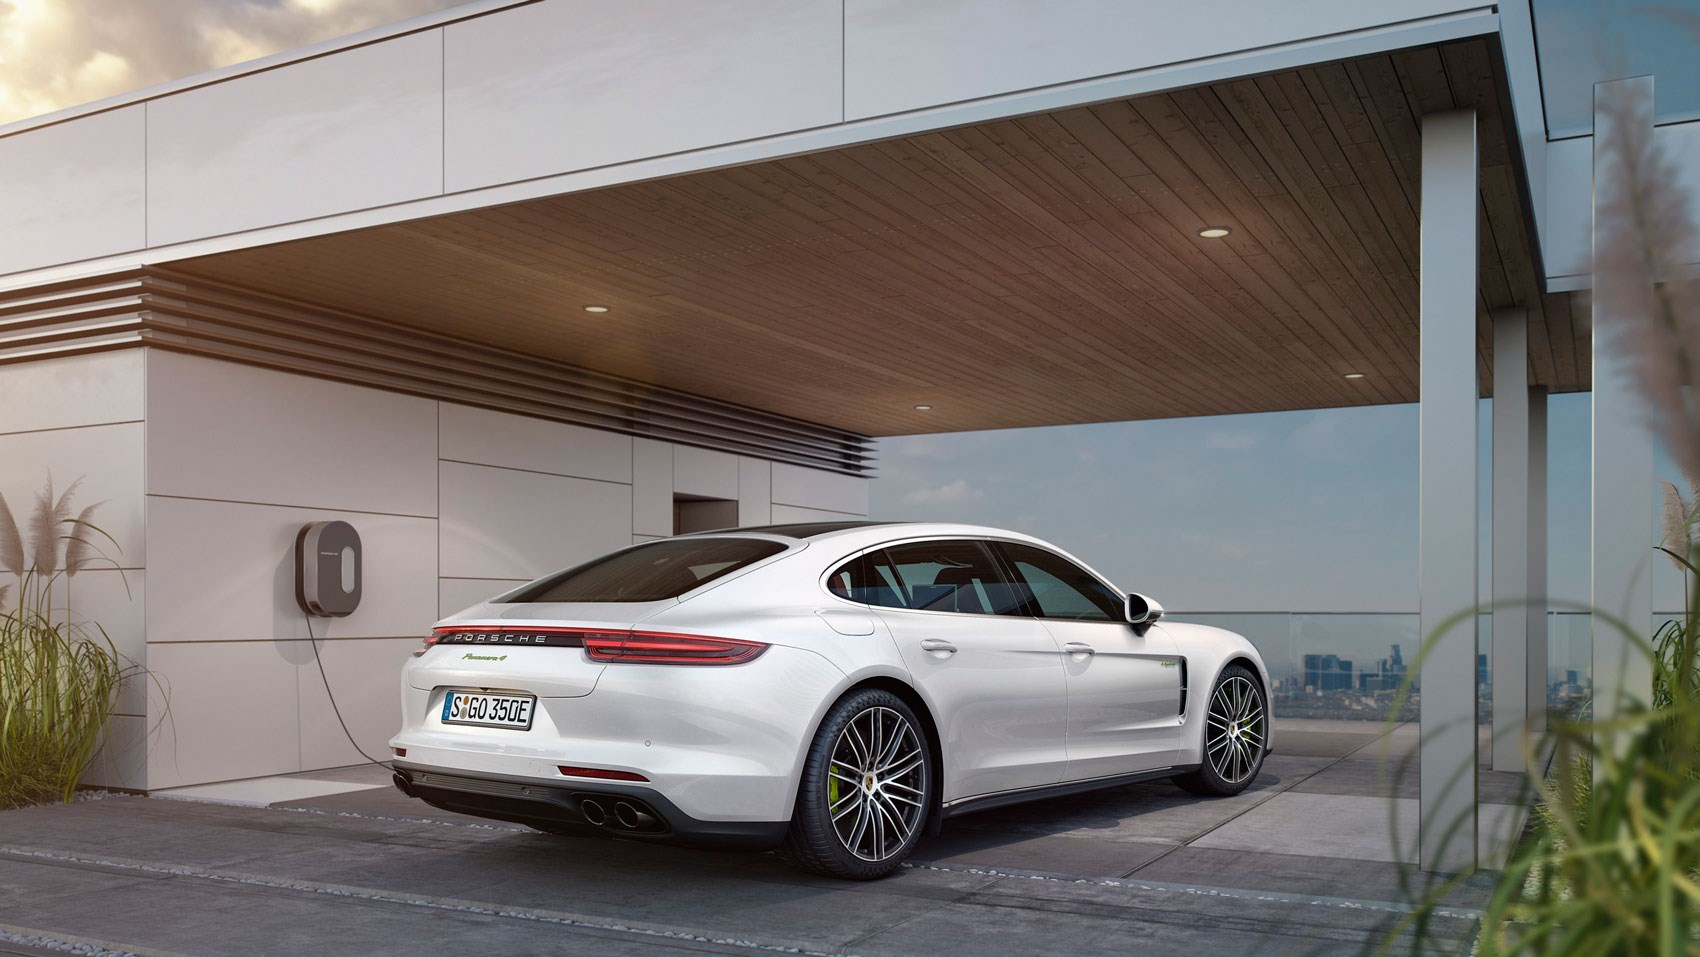 Porsche Panamera Lease >> Porsche Panamera 4 E-Hybrid Executive LWB (2017) review | CAR Magazine